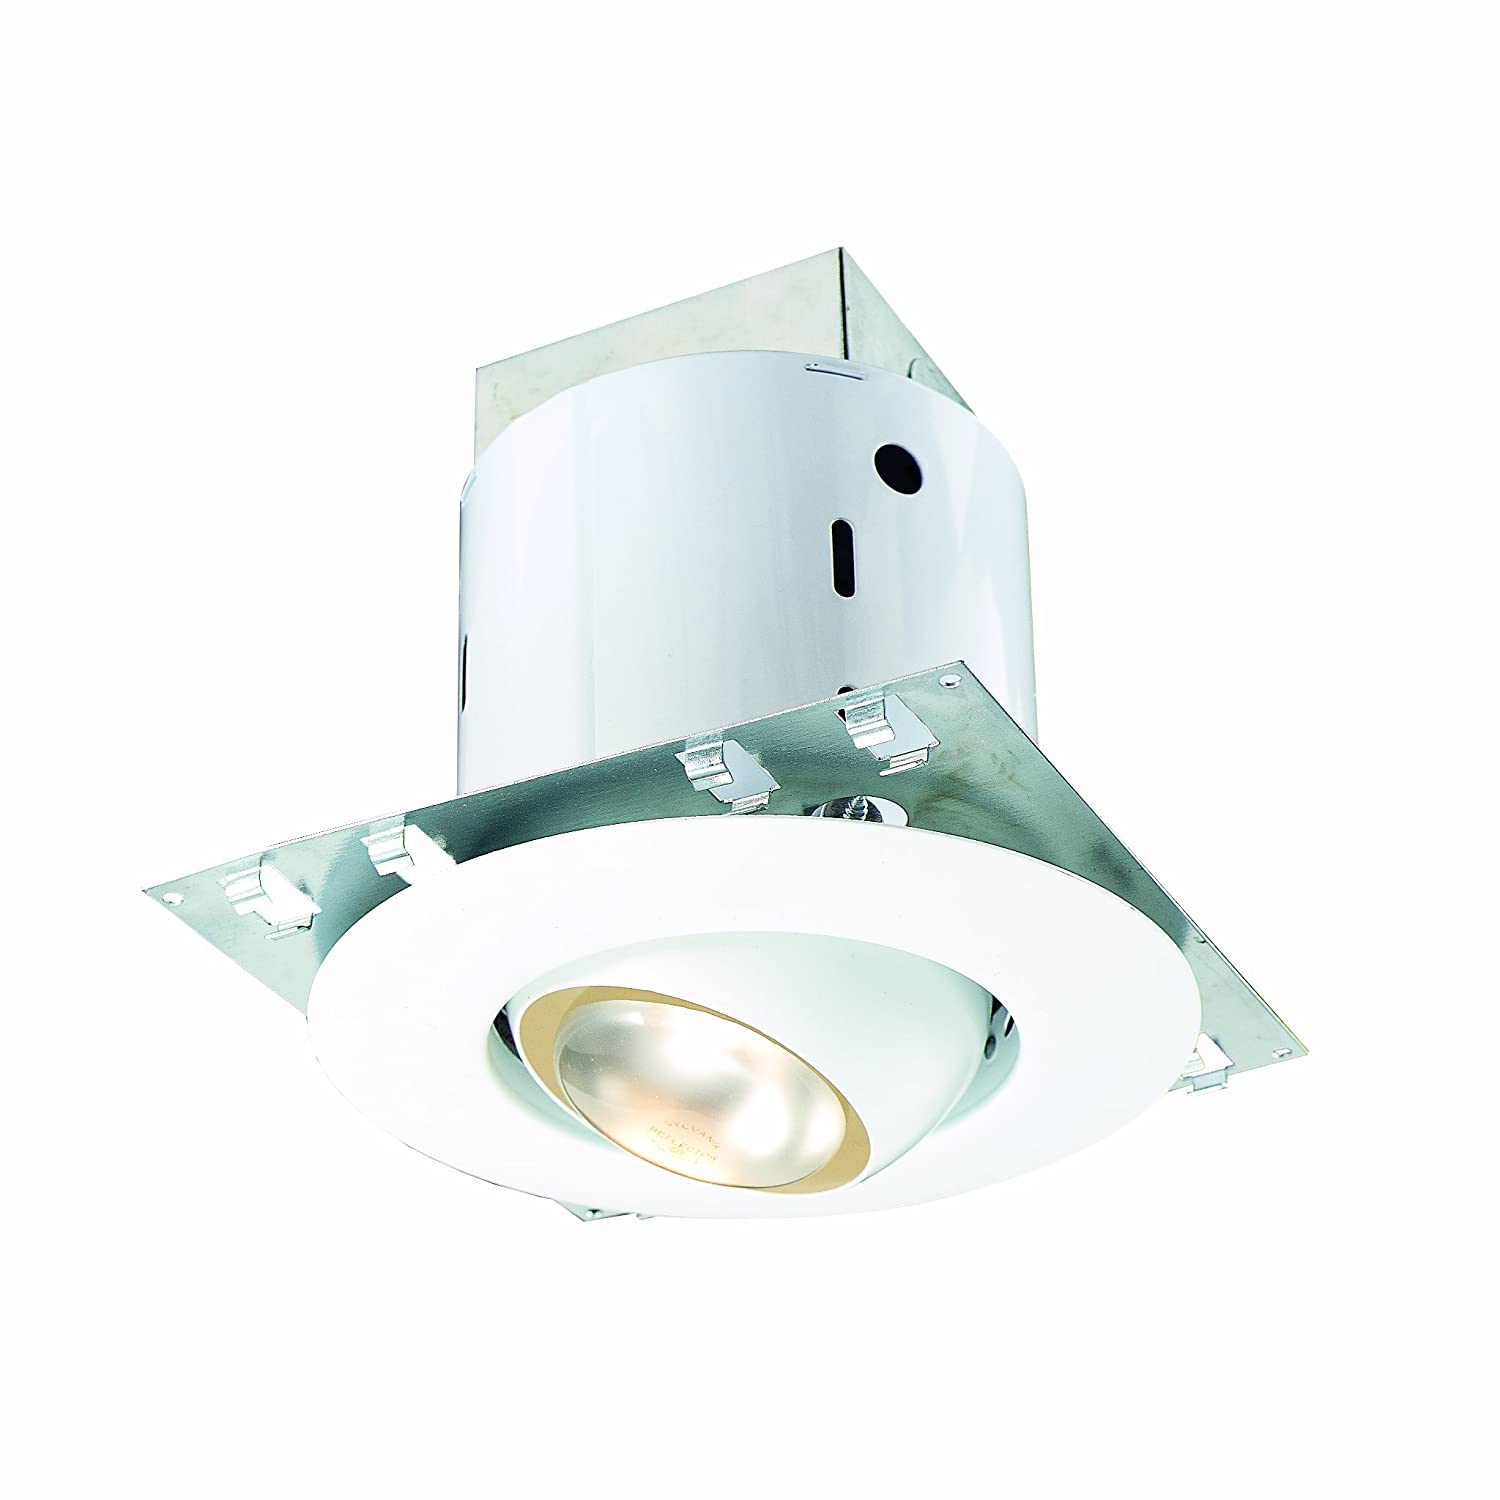 thomas lighting dy6410 recessed kit complete recessed lighting